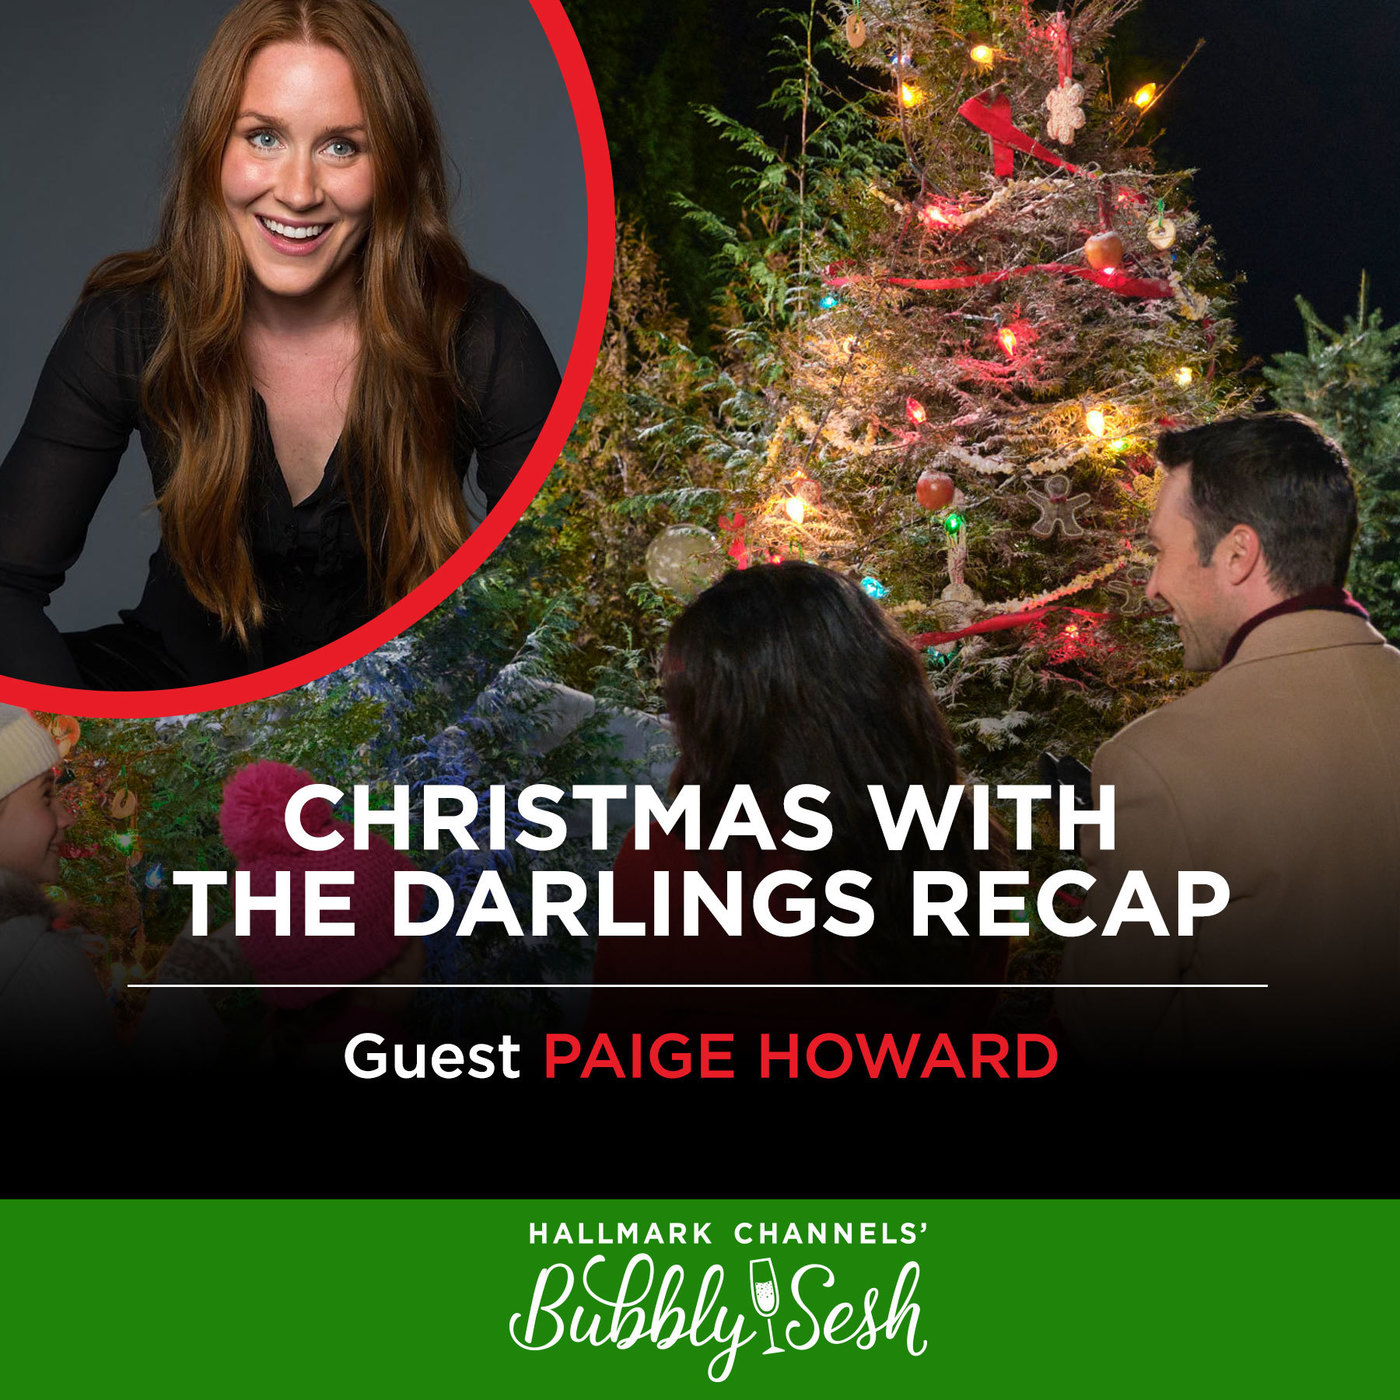 Christmas with the Darlings with Guest Paige Howard